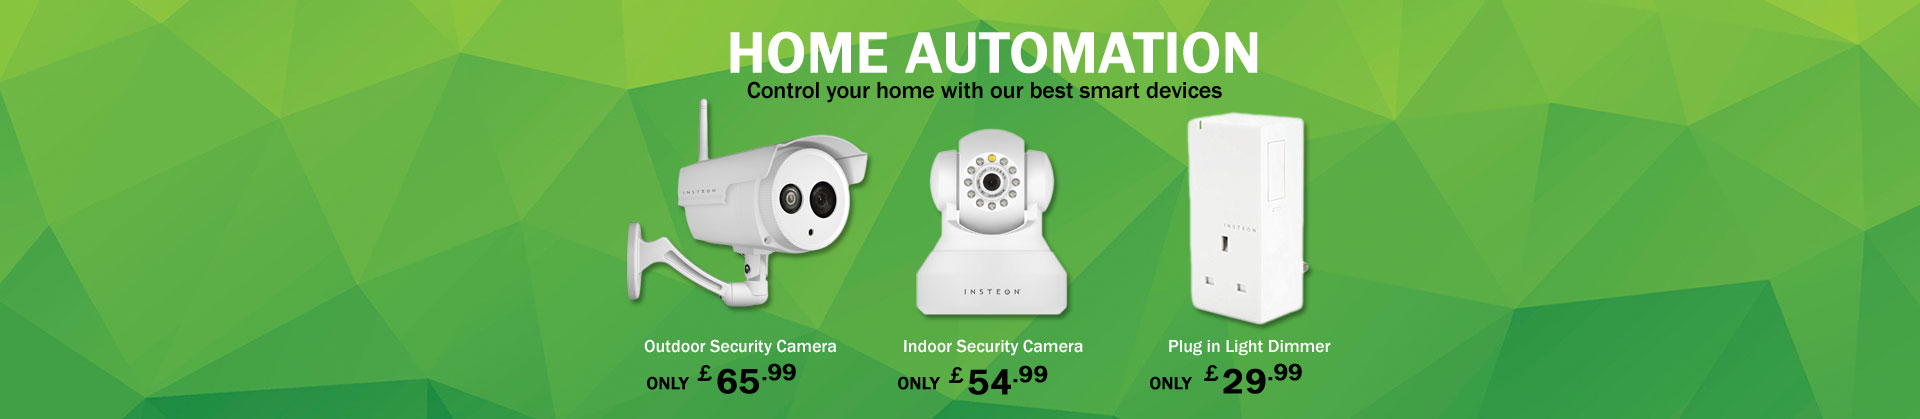 Totally automate your home with Insteon